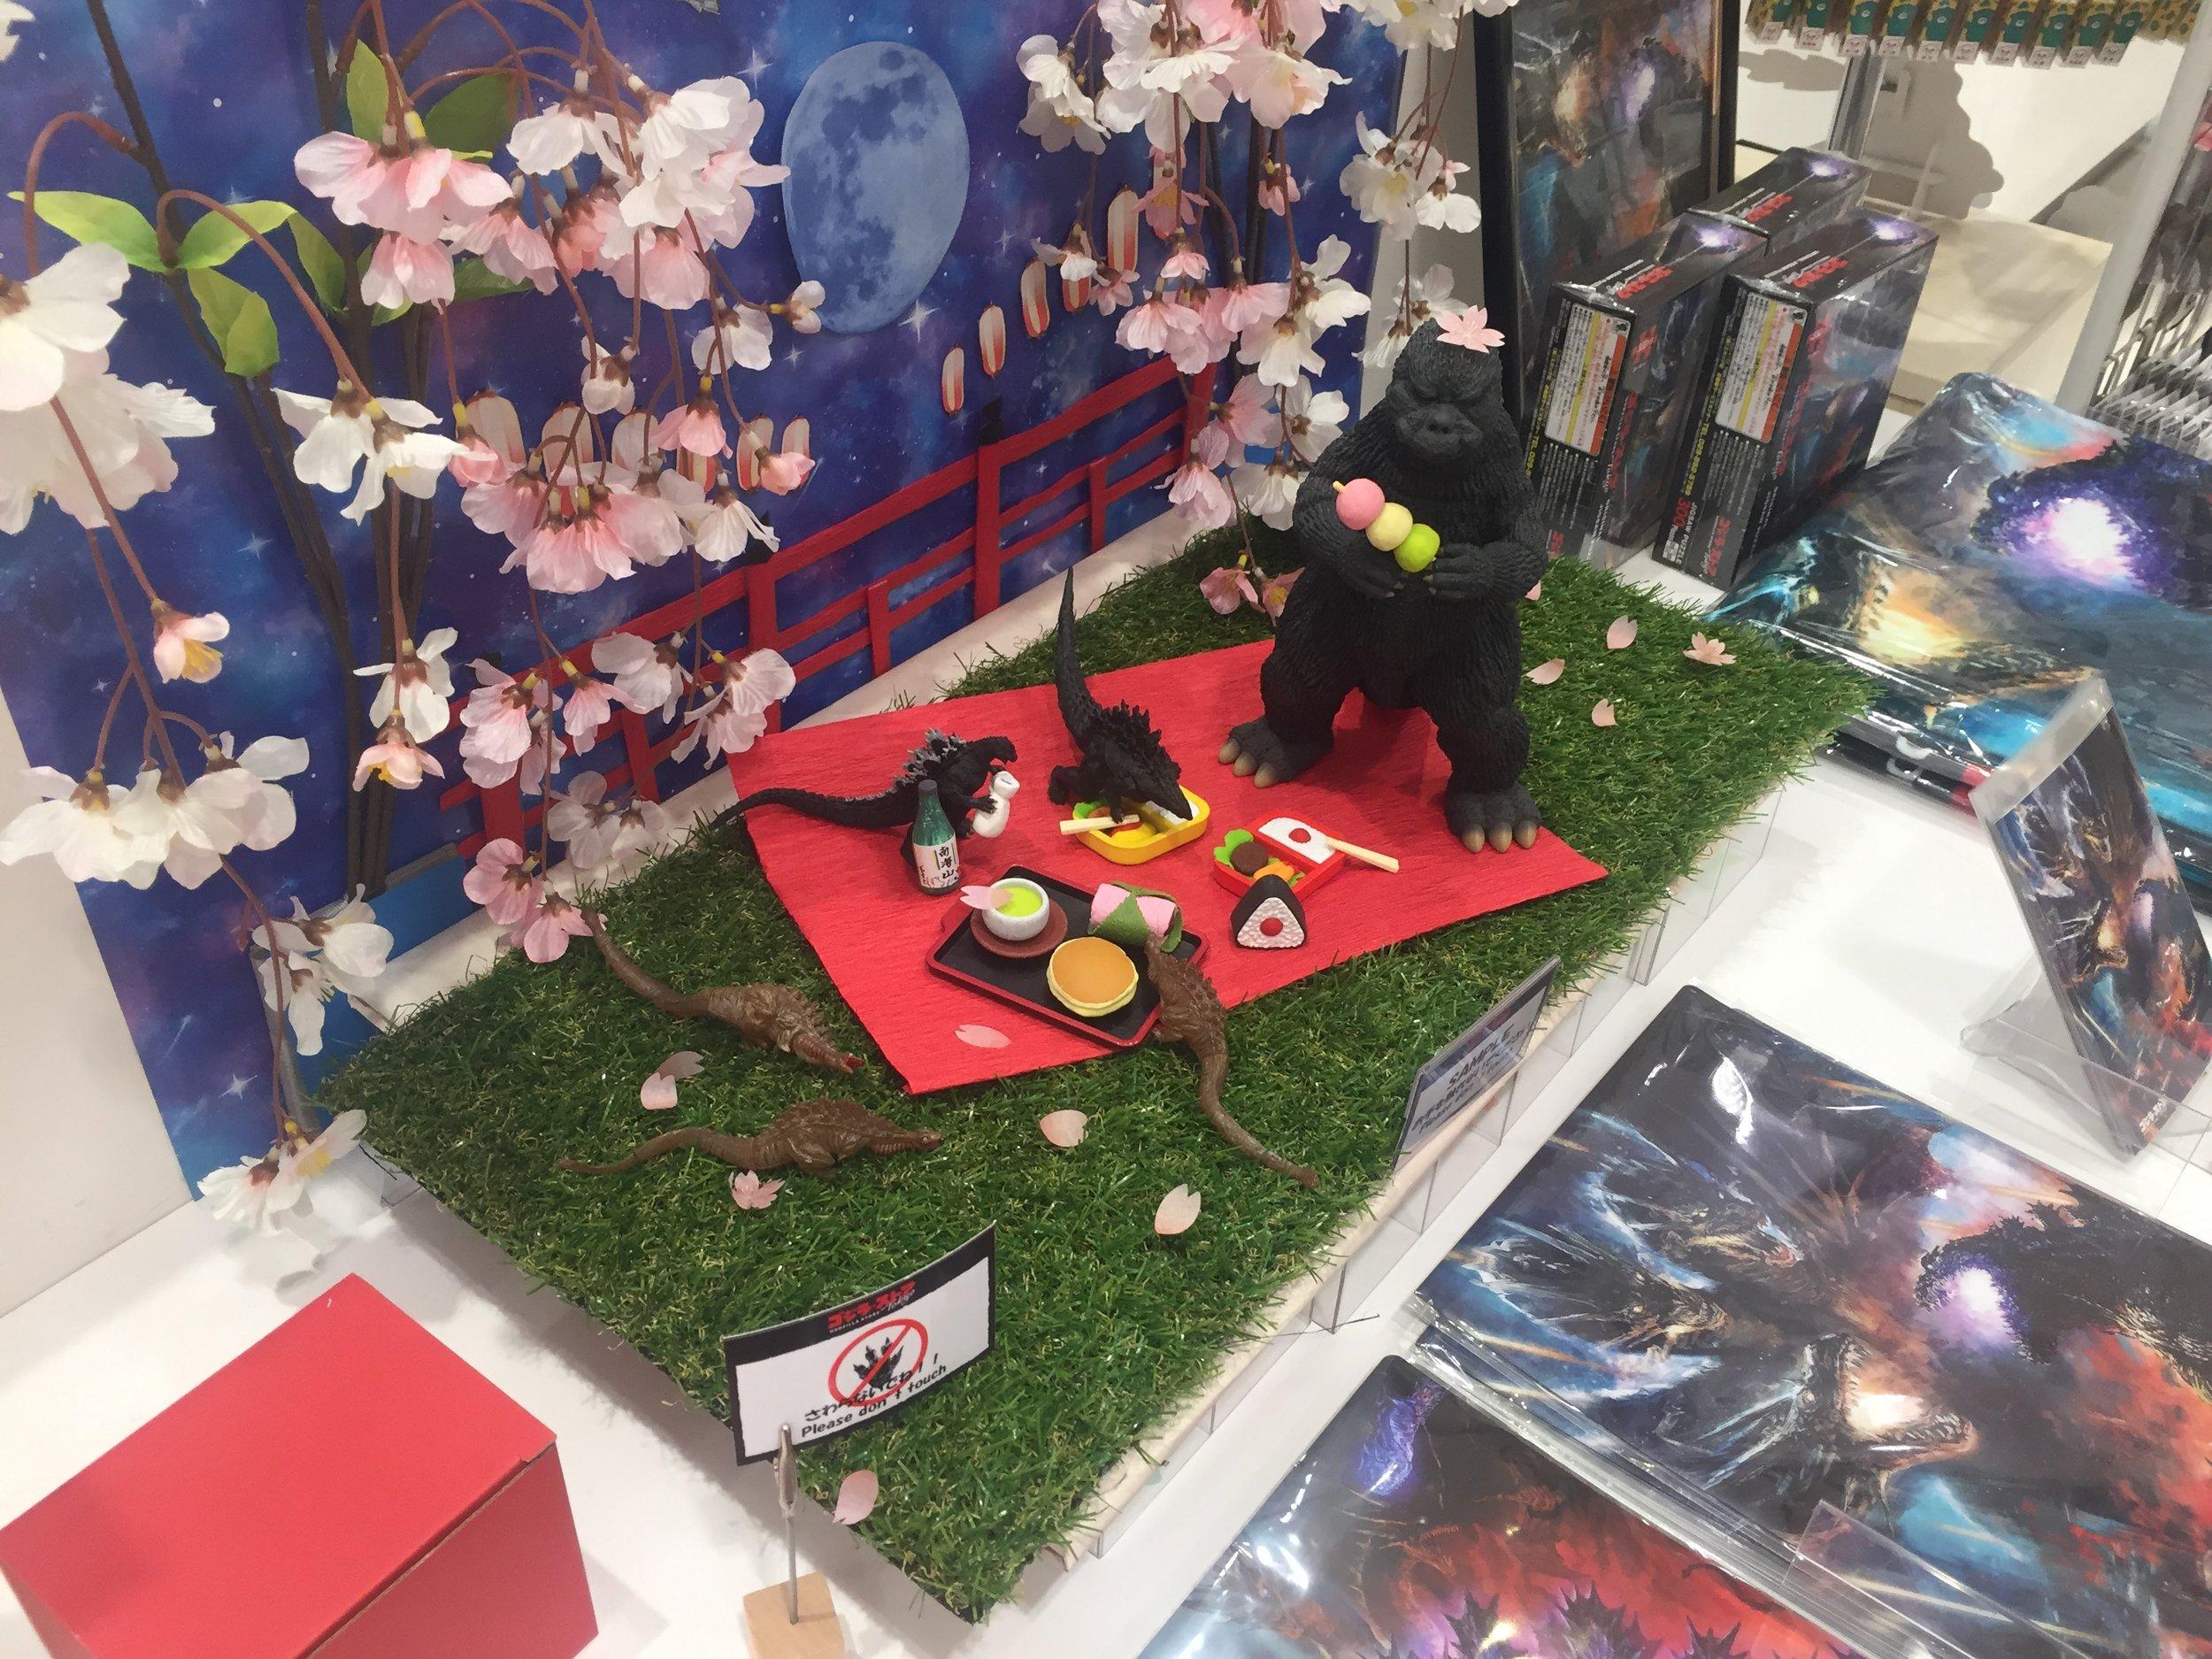 godzilla store cherry blossom display.JPG